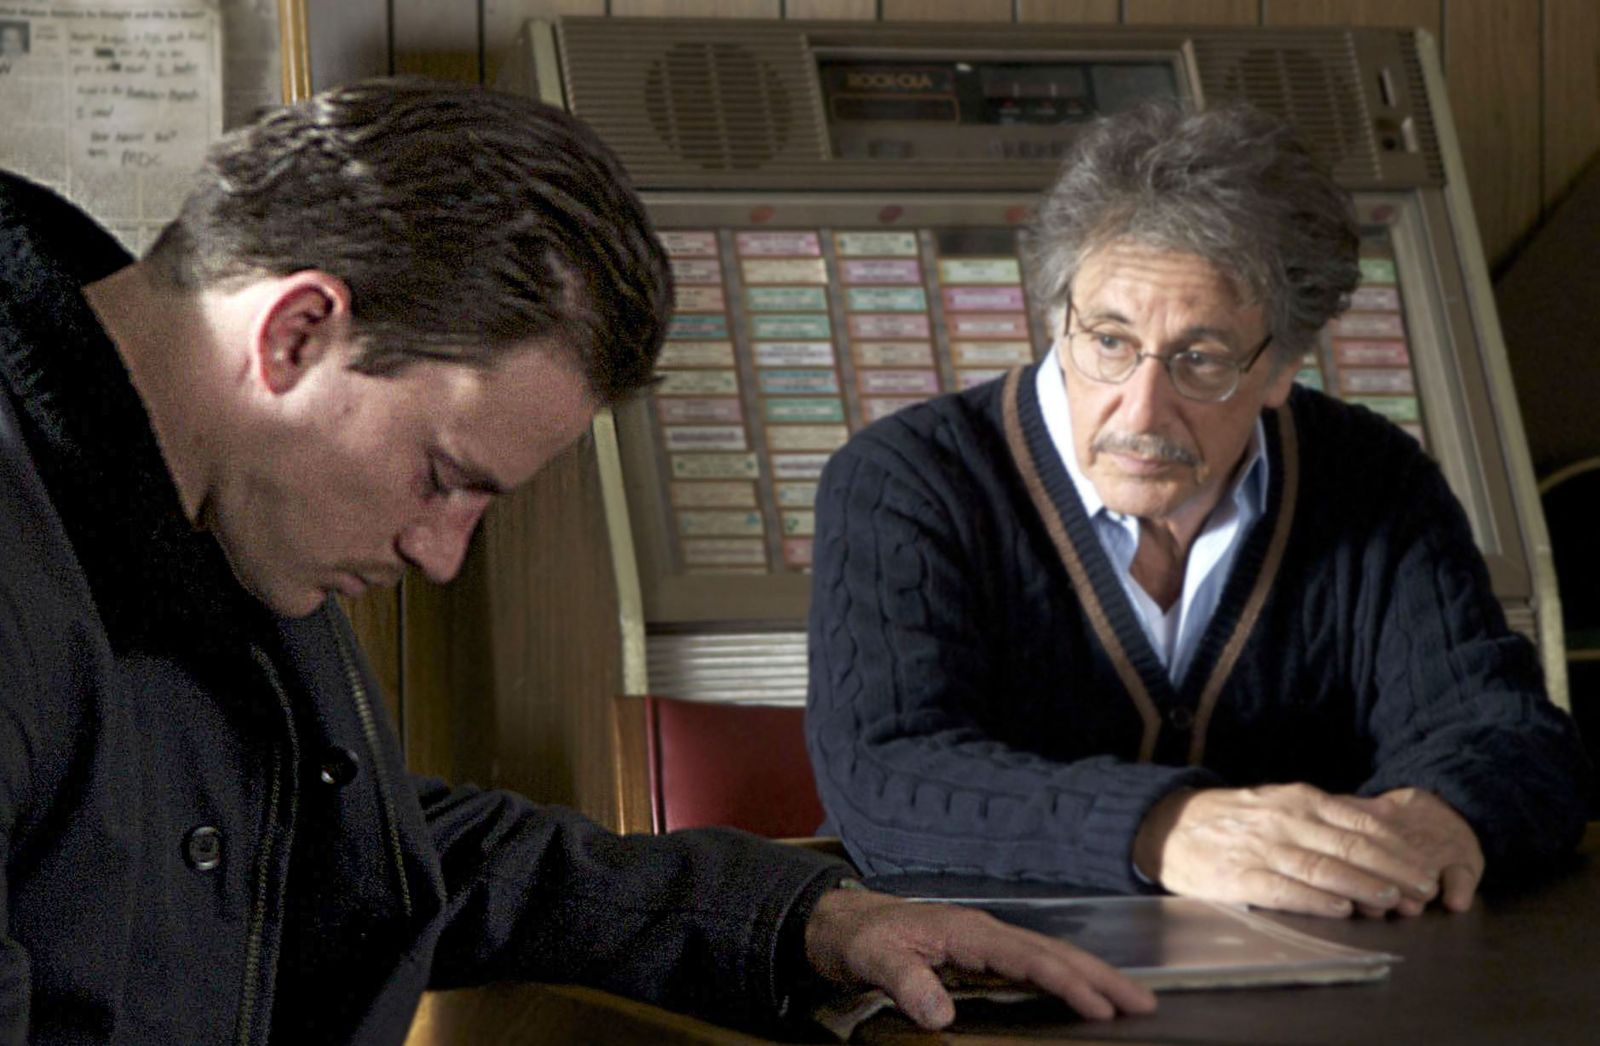 Acting 101 is now in session with Professor Pacino.